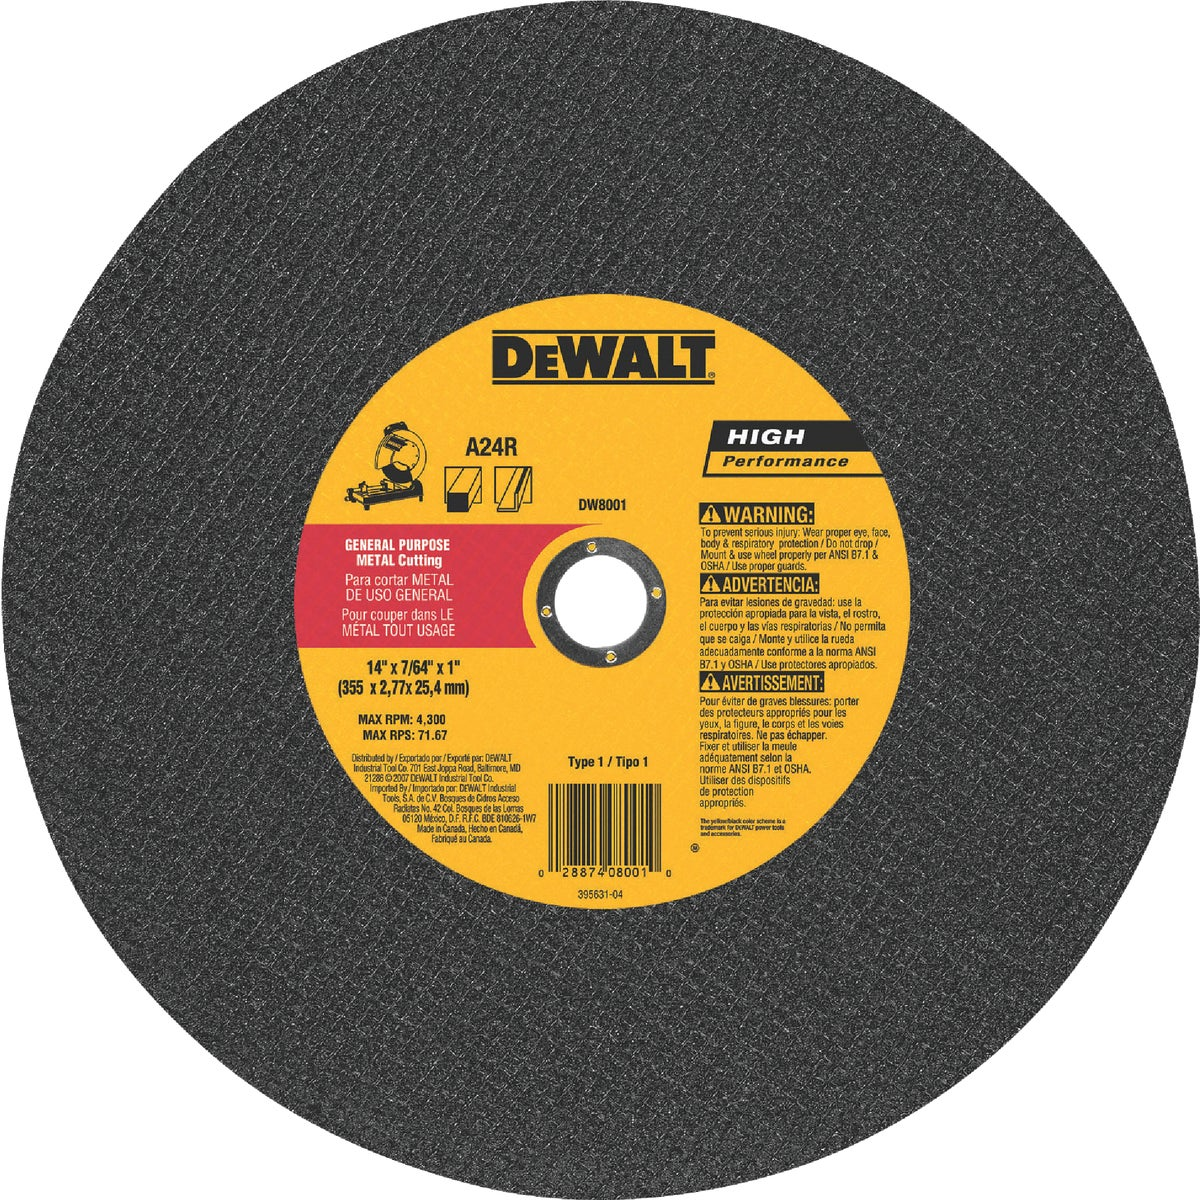 14X7/64 CUTOFF WHEEL - DW8001 by DeWalt